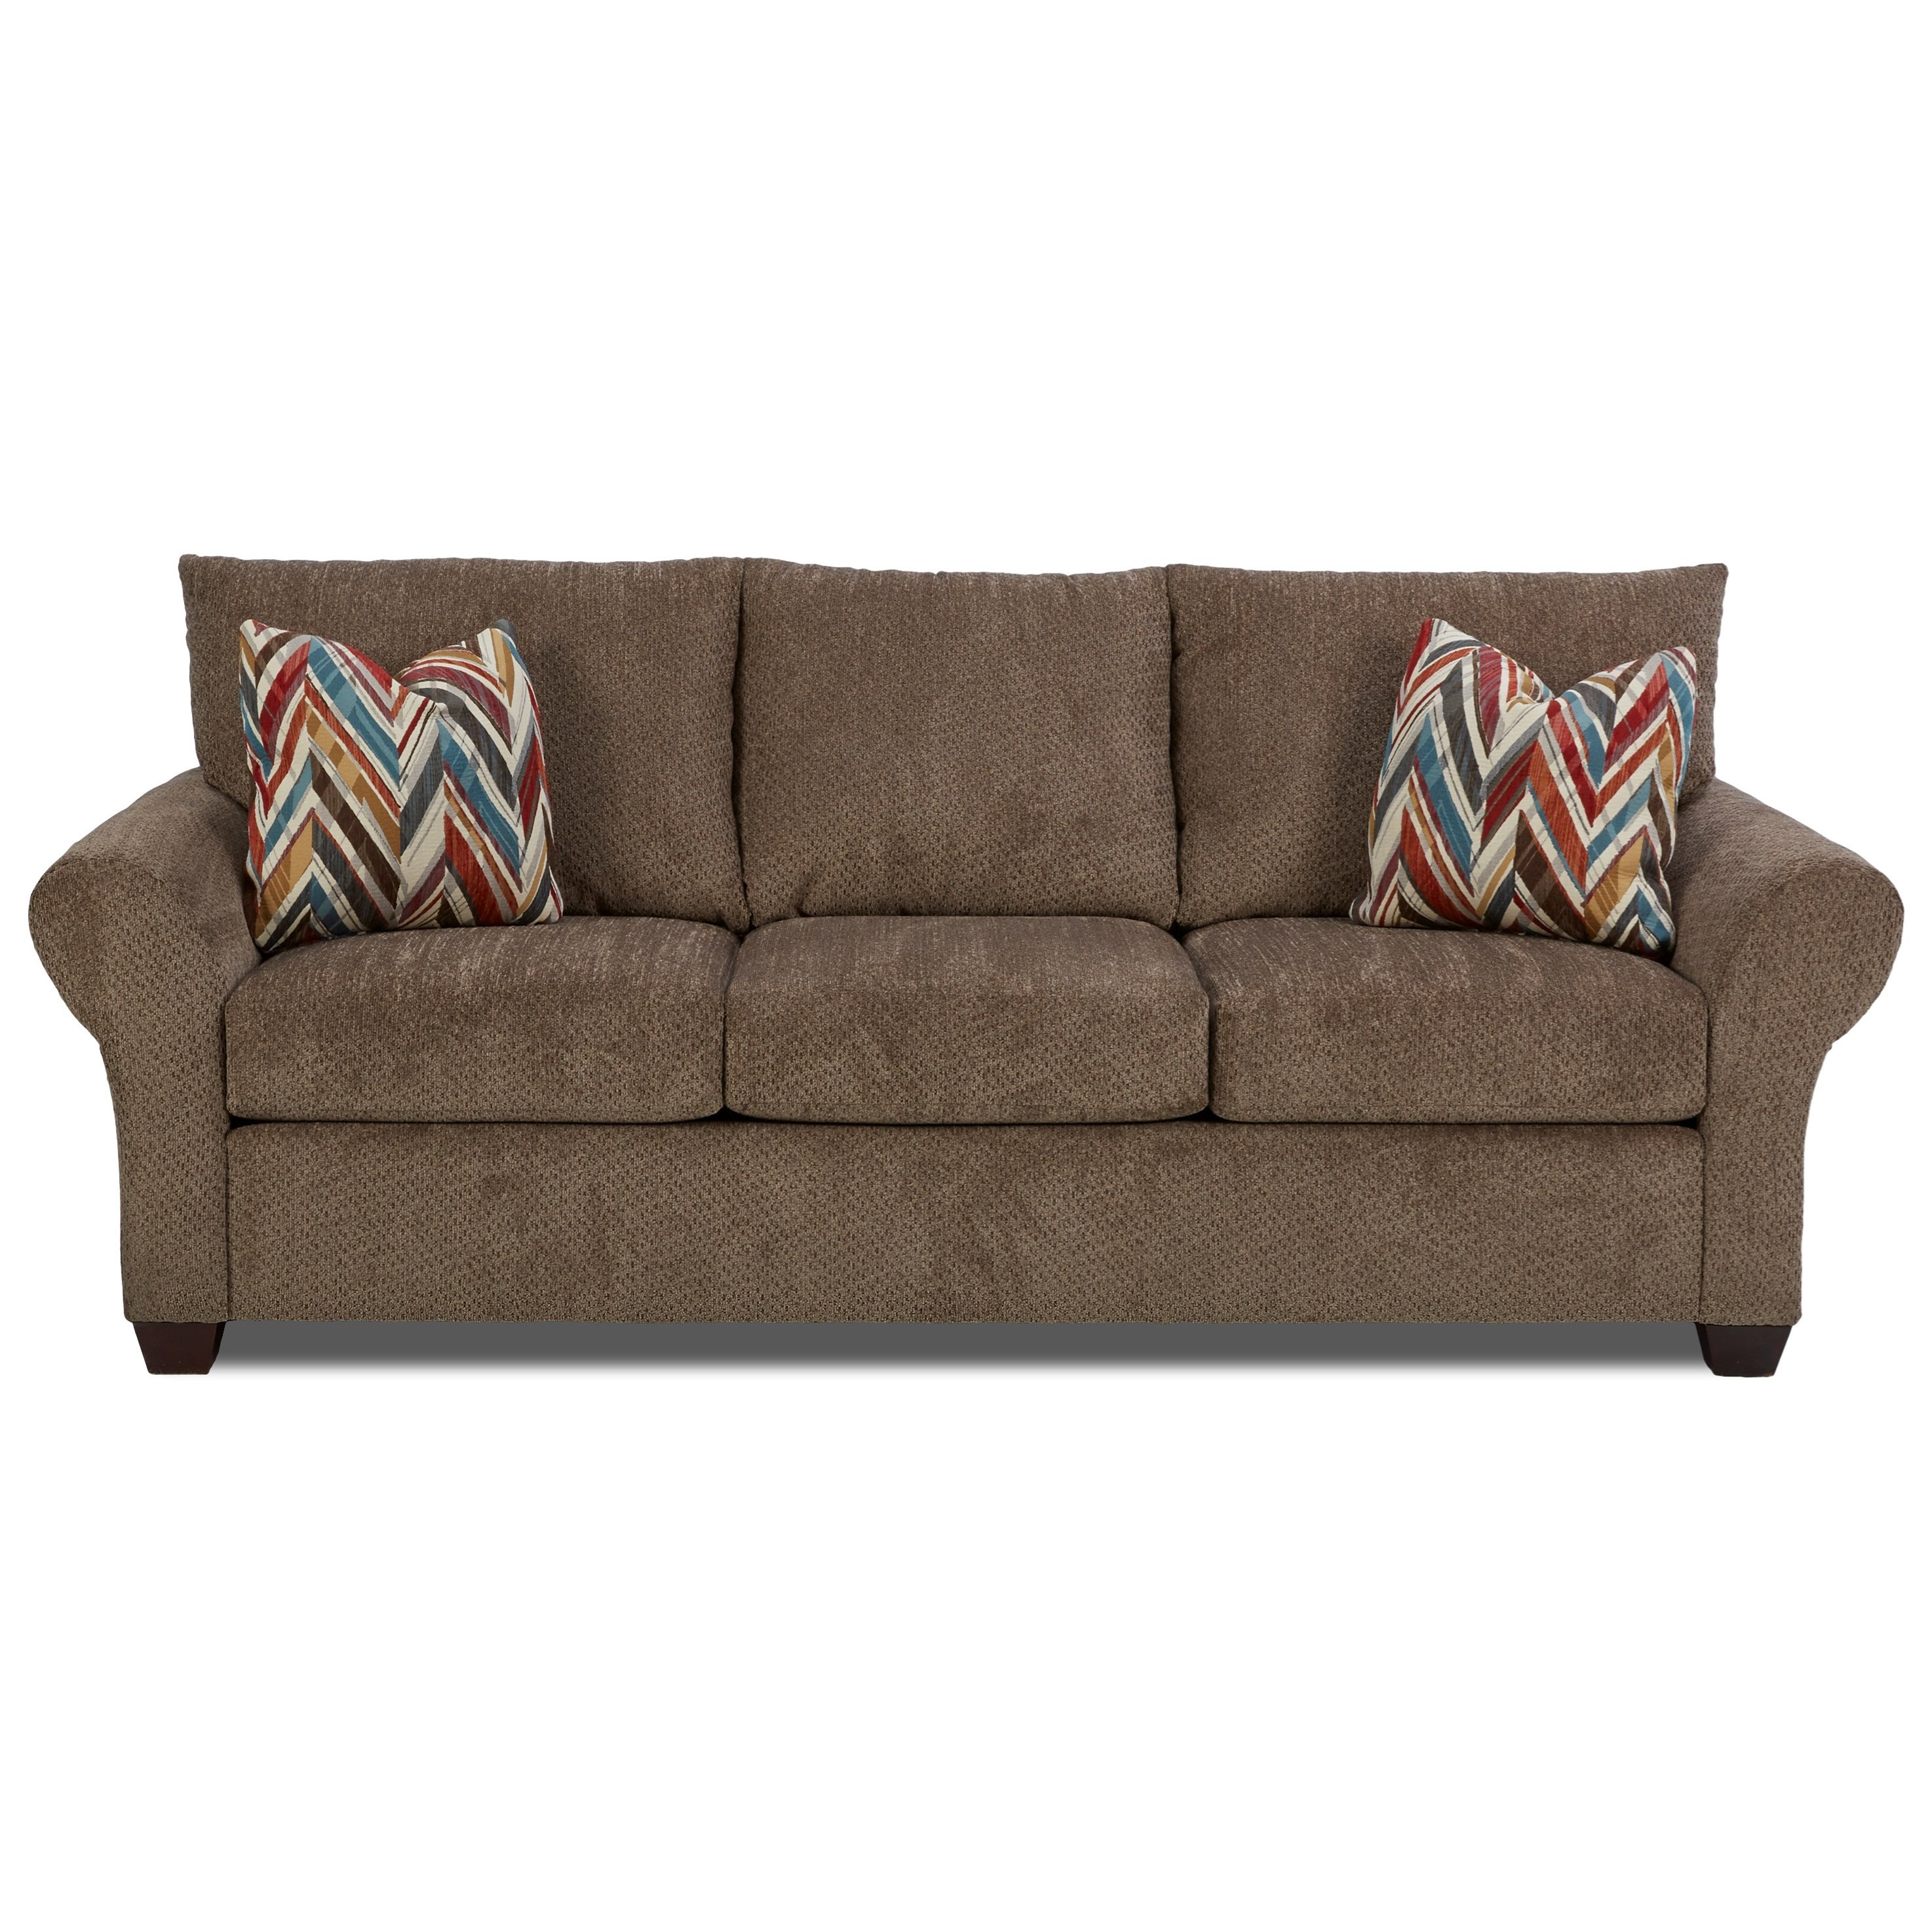 Klaussner Cedar Creek Dreamquest Sleeper Sofa - Item Number: K16300 DQSL-Chunky Otter